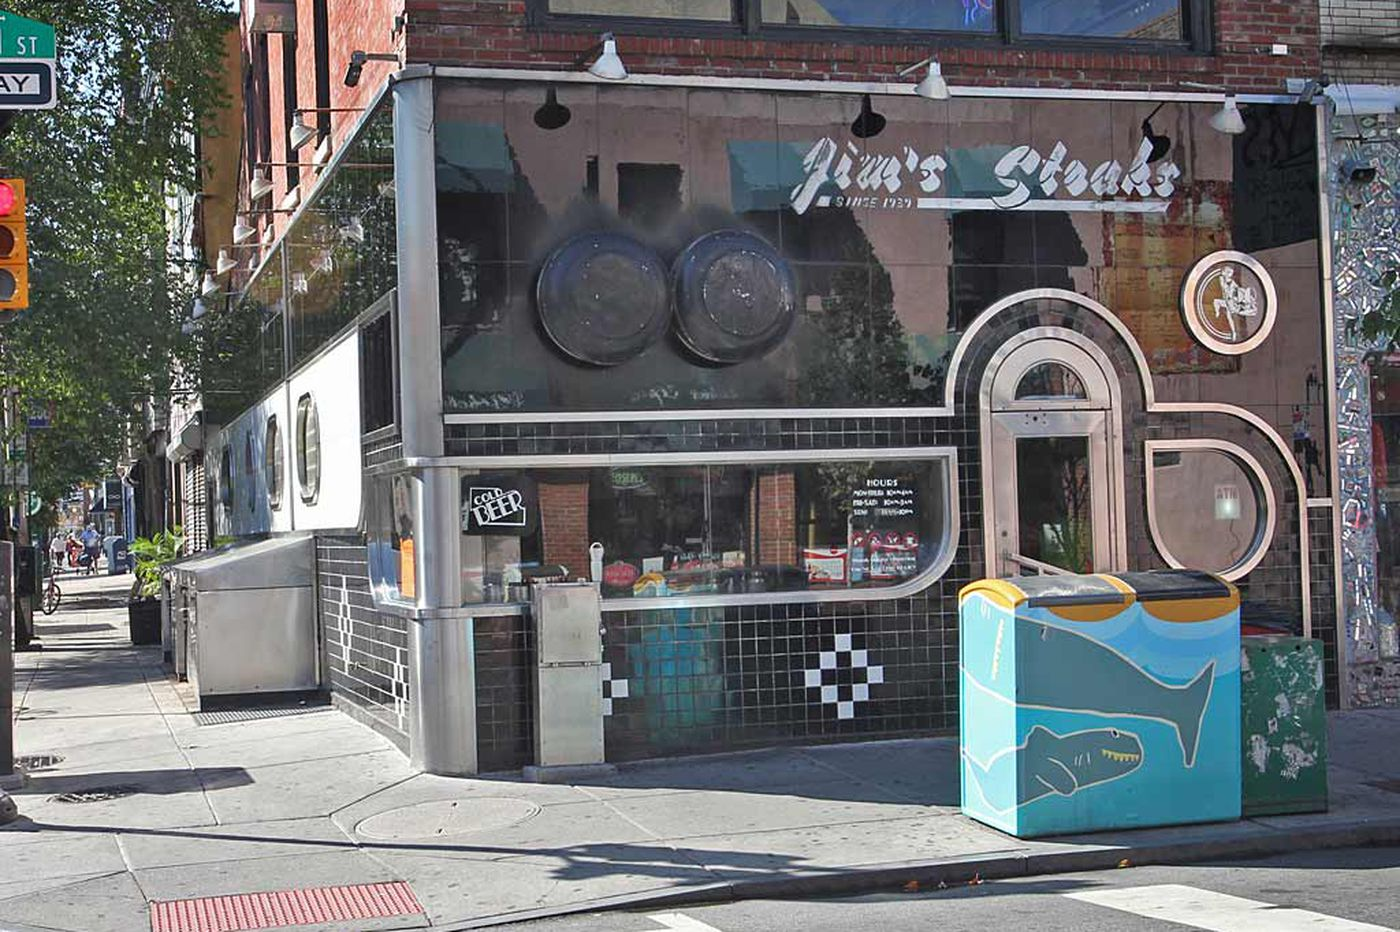 South Street businesses including Jim's, Lorenzo's, and Wawa will close early on weekends to avoid the 'second bar wave'